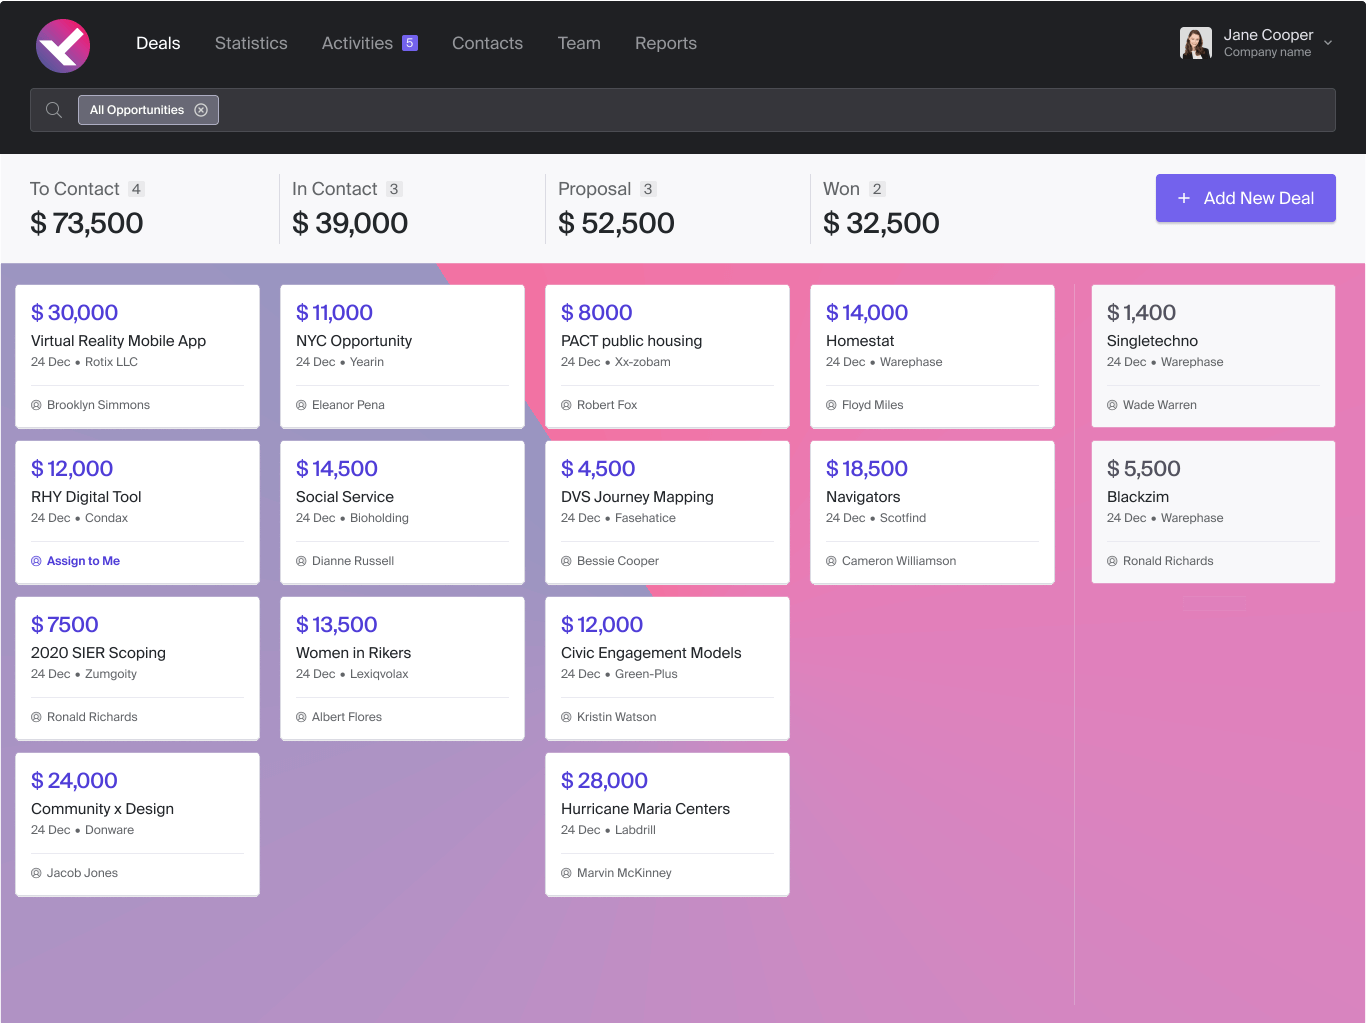 A dashboard from a CRM program for a small business